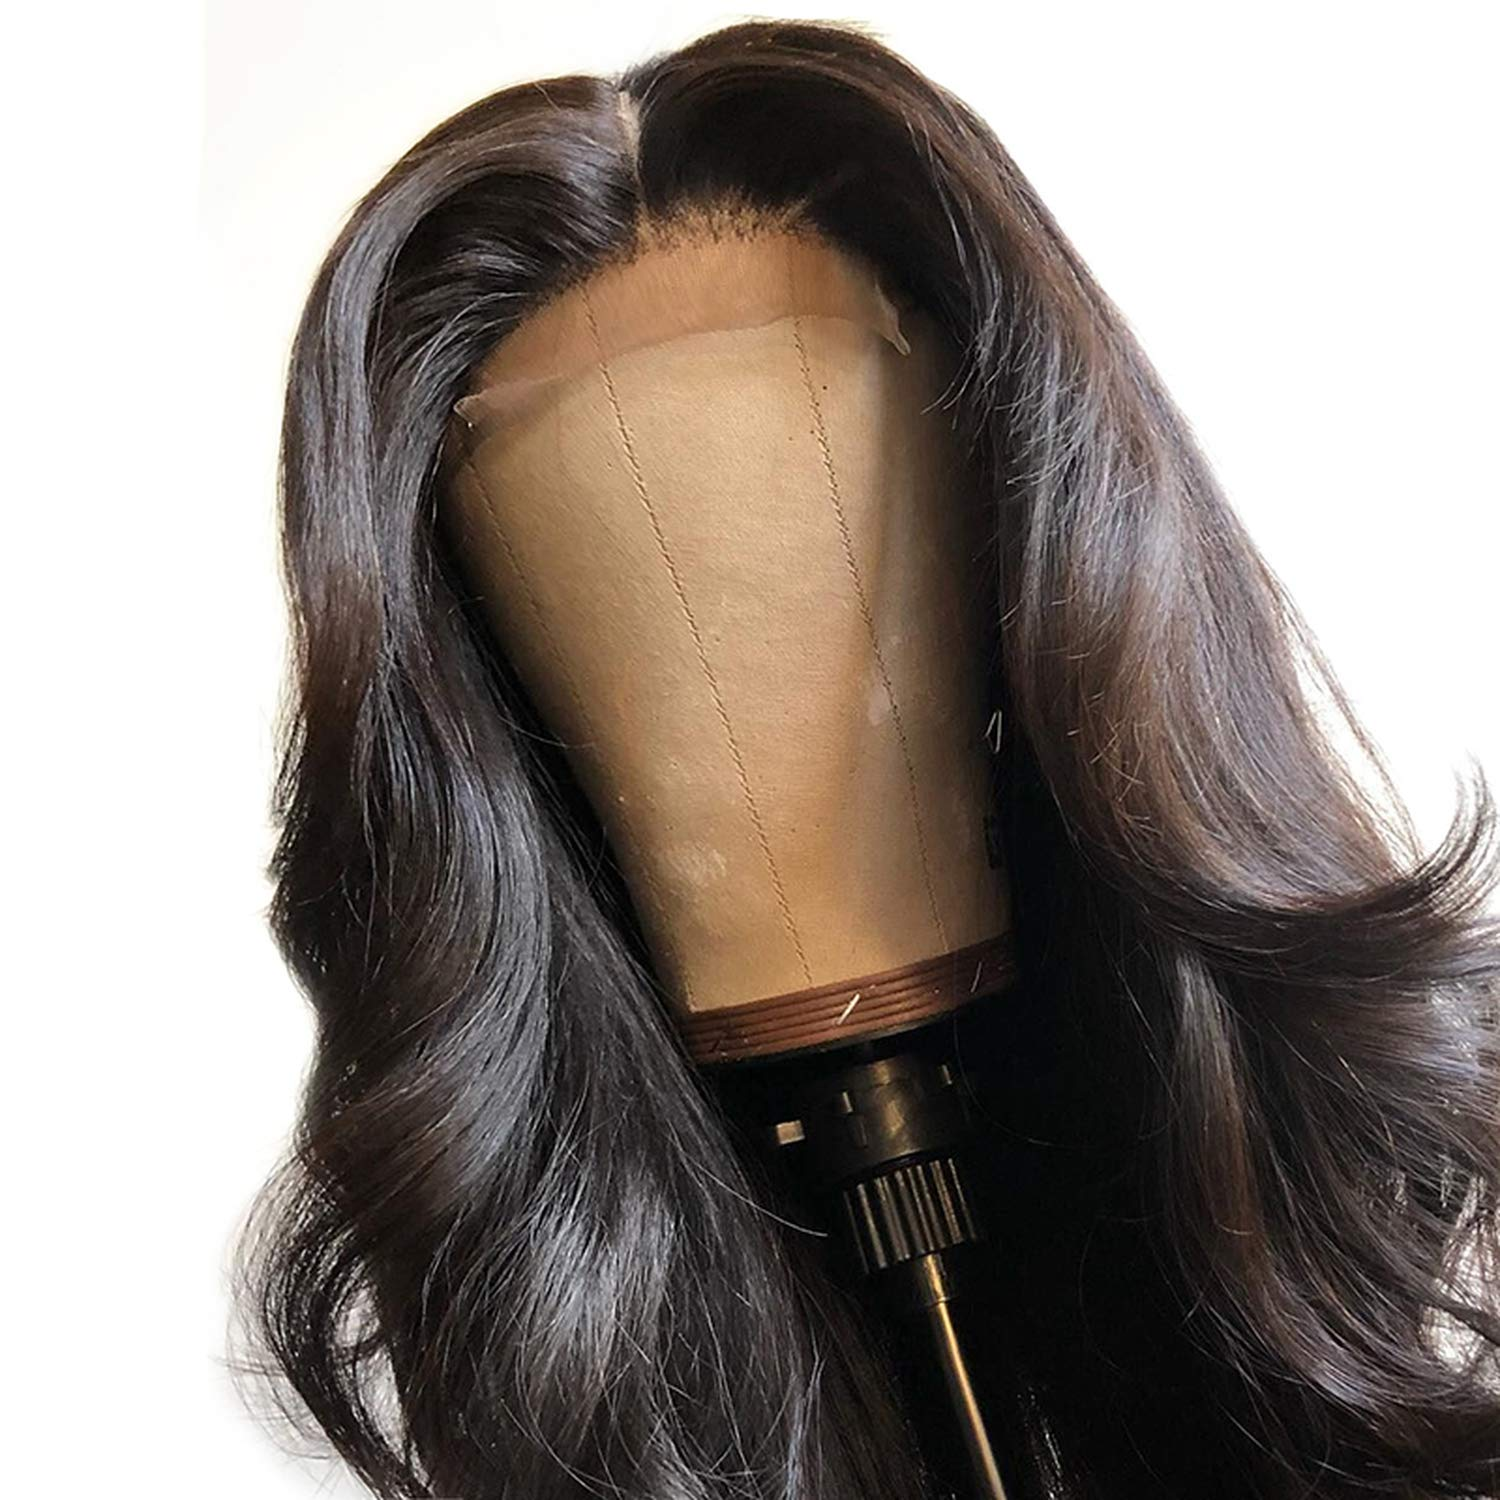 Body Wave Lace Front Human Hair Wigs For Black Women Frontal Lace Wig Pre Plucked With Baby Hair Brazilian Remy Full End Vs Bob,8Inches